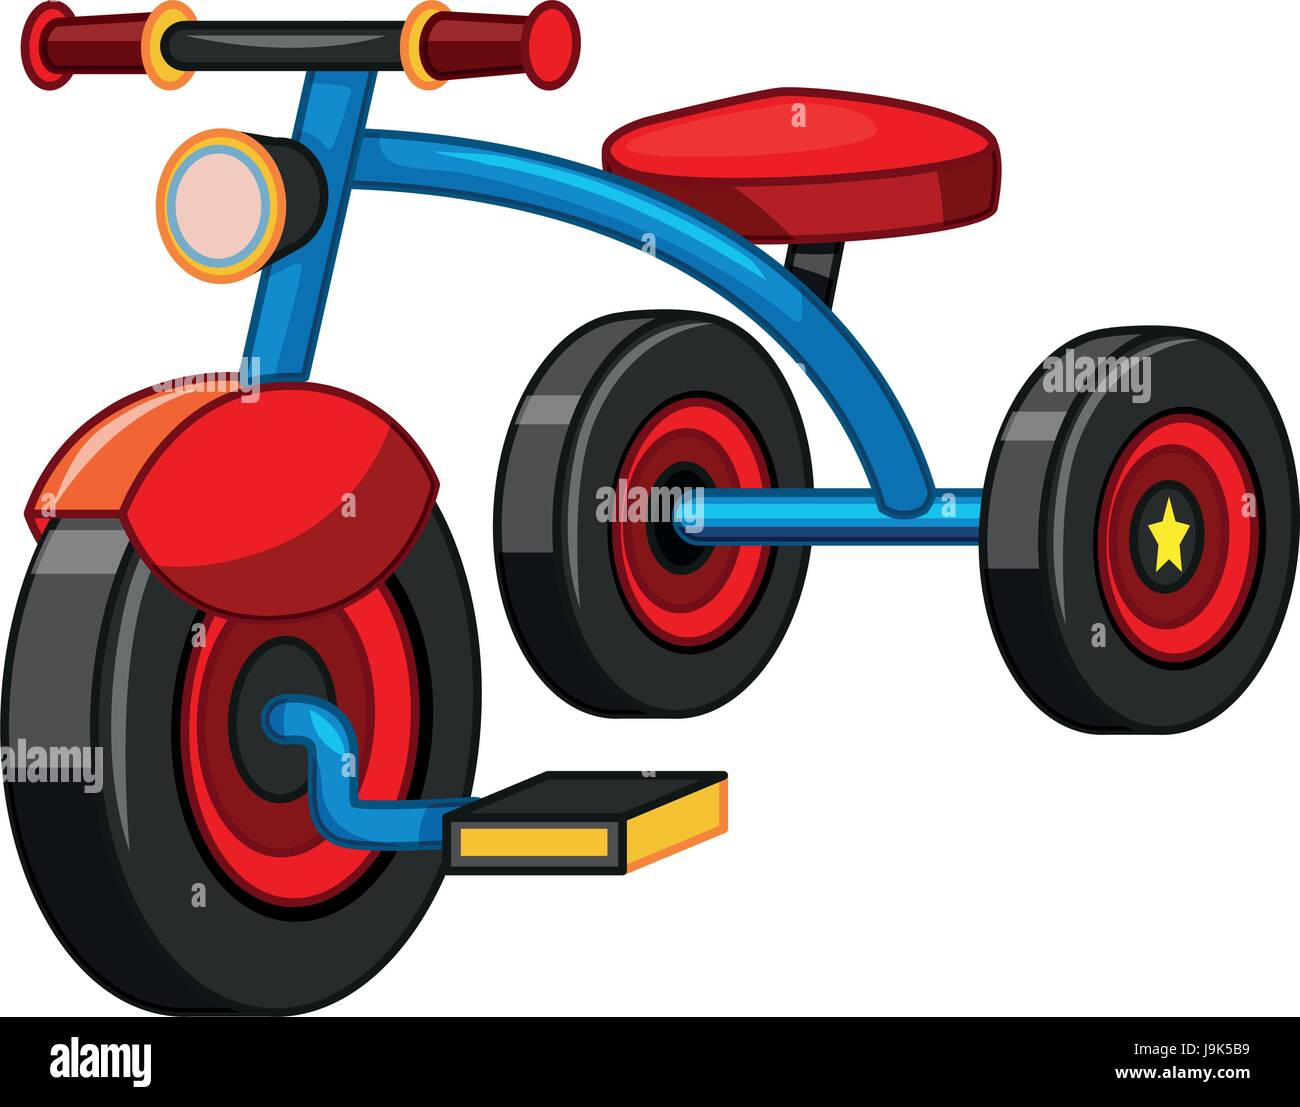 Tricycle with blue and red color illustration - Stock Image